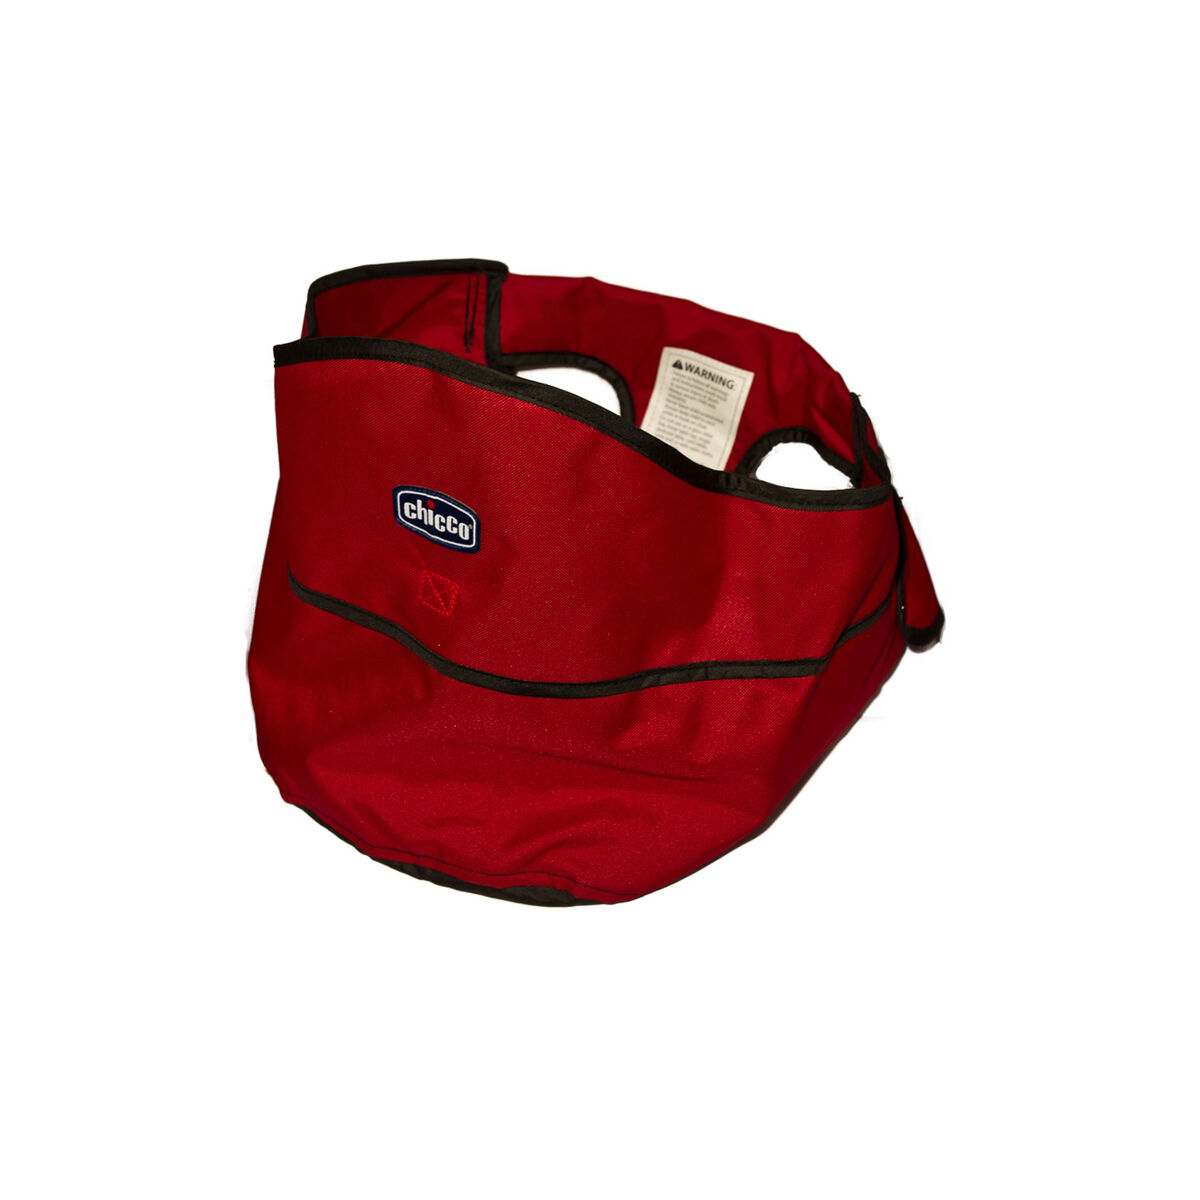 Chicco Caddy Hook On Seat Cover Amp Harness Red